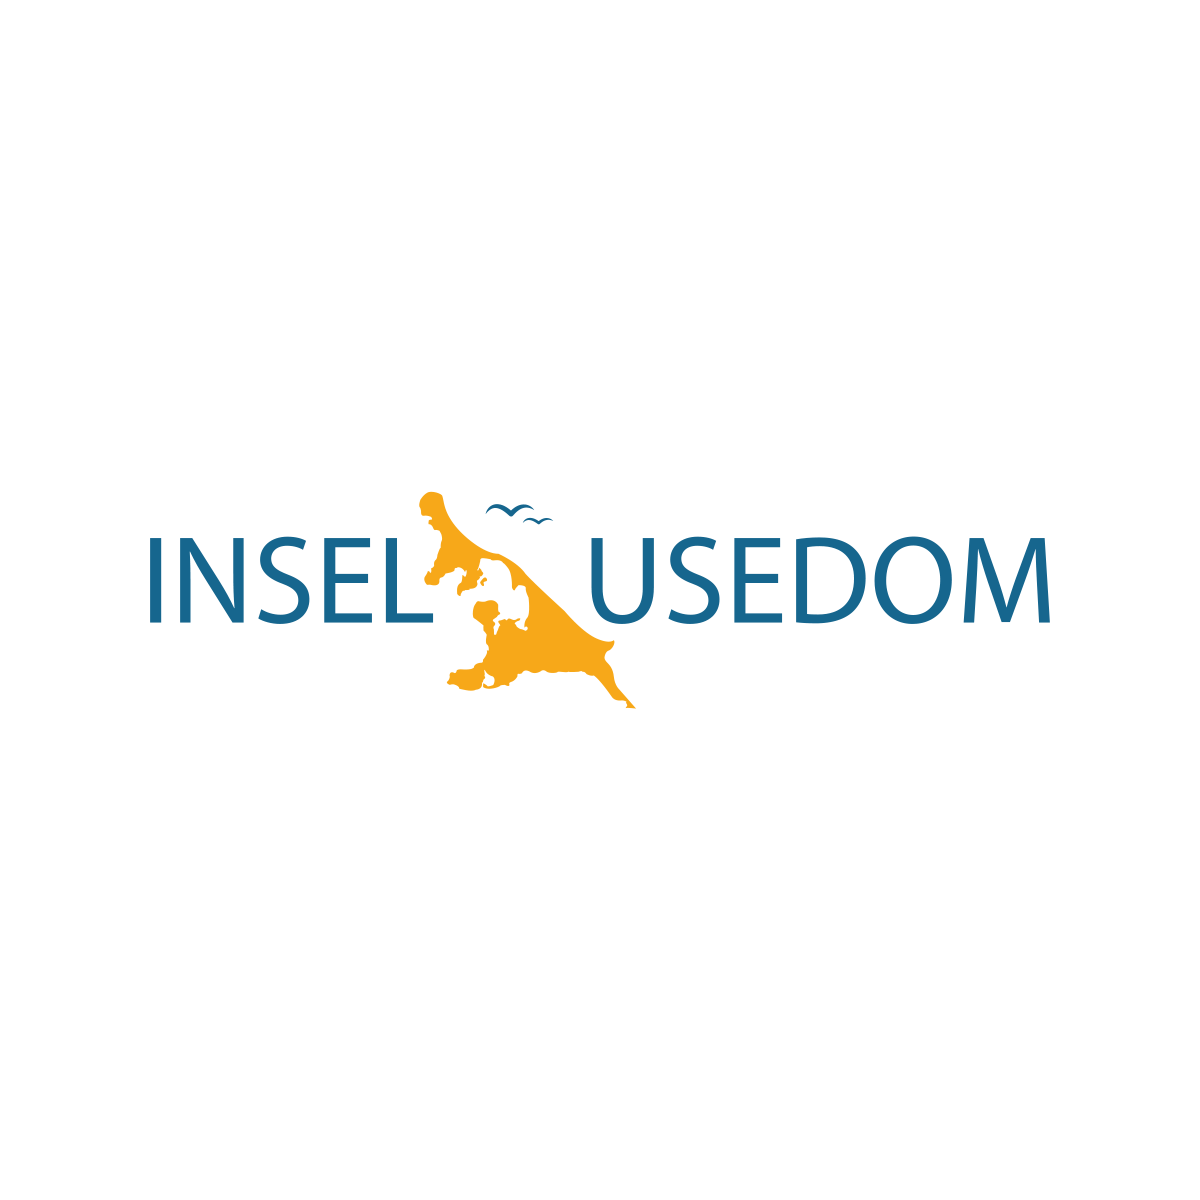 Insel Usedom - TYP01A